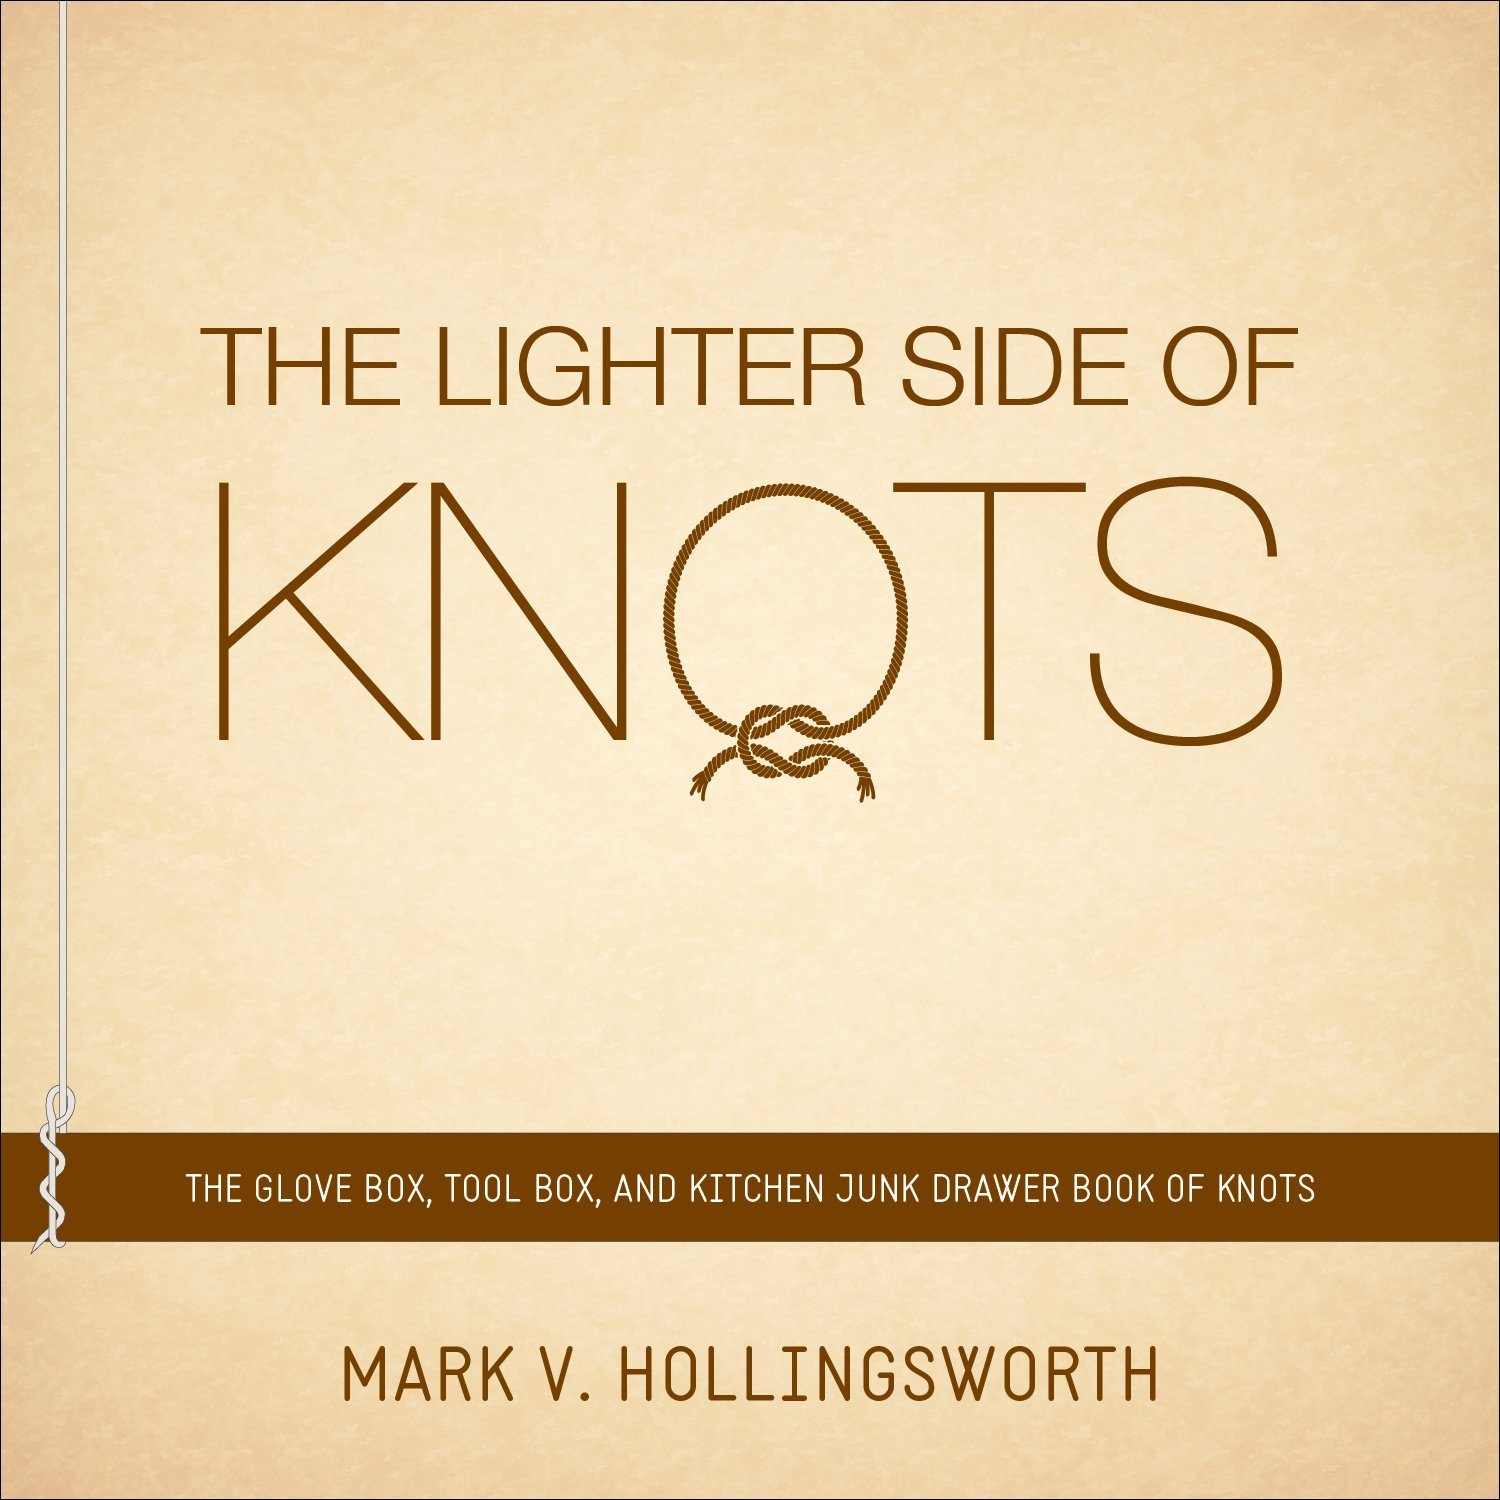 The Lighter Side of Knots: The Glove Box, Tool Box, and Kitchen Junk Drawer Book of Knots by Frederick Hollingsworth (10-Sep-2013) Paperback